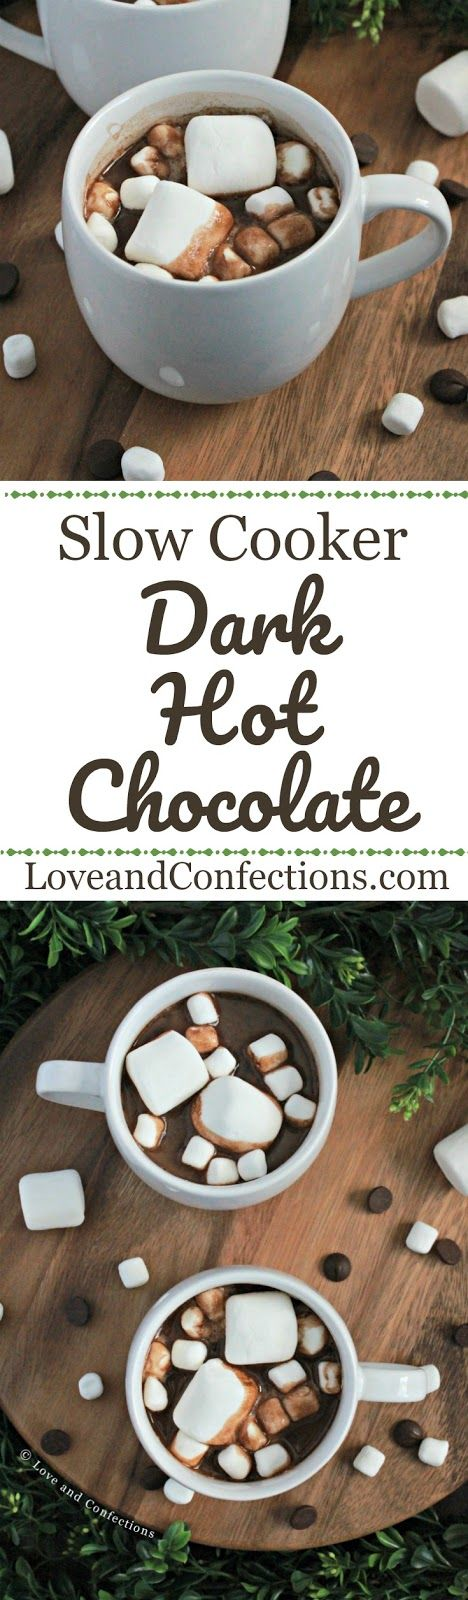 Slow Cooker Dark Hot Chocolate from LoveandConfections.com #sponsored by @floridamilk